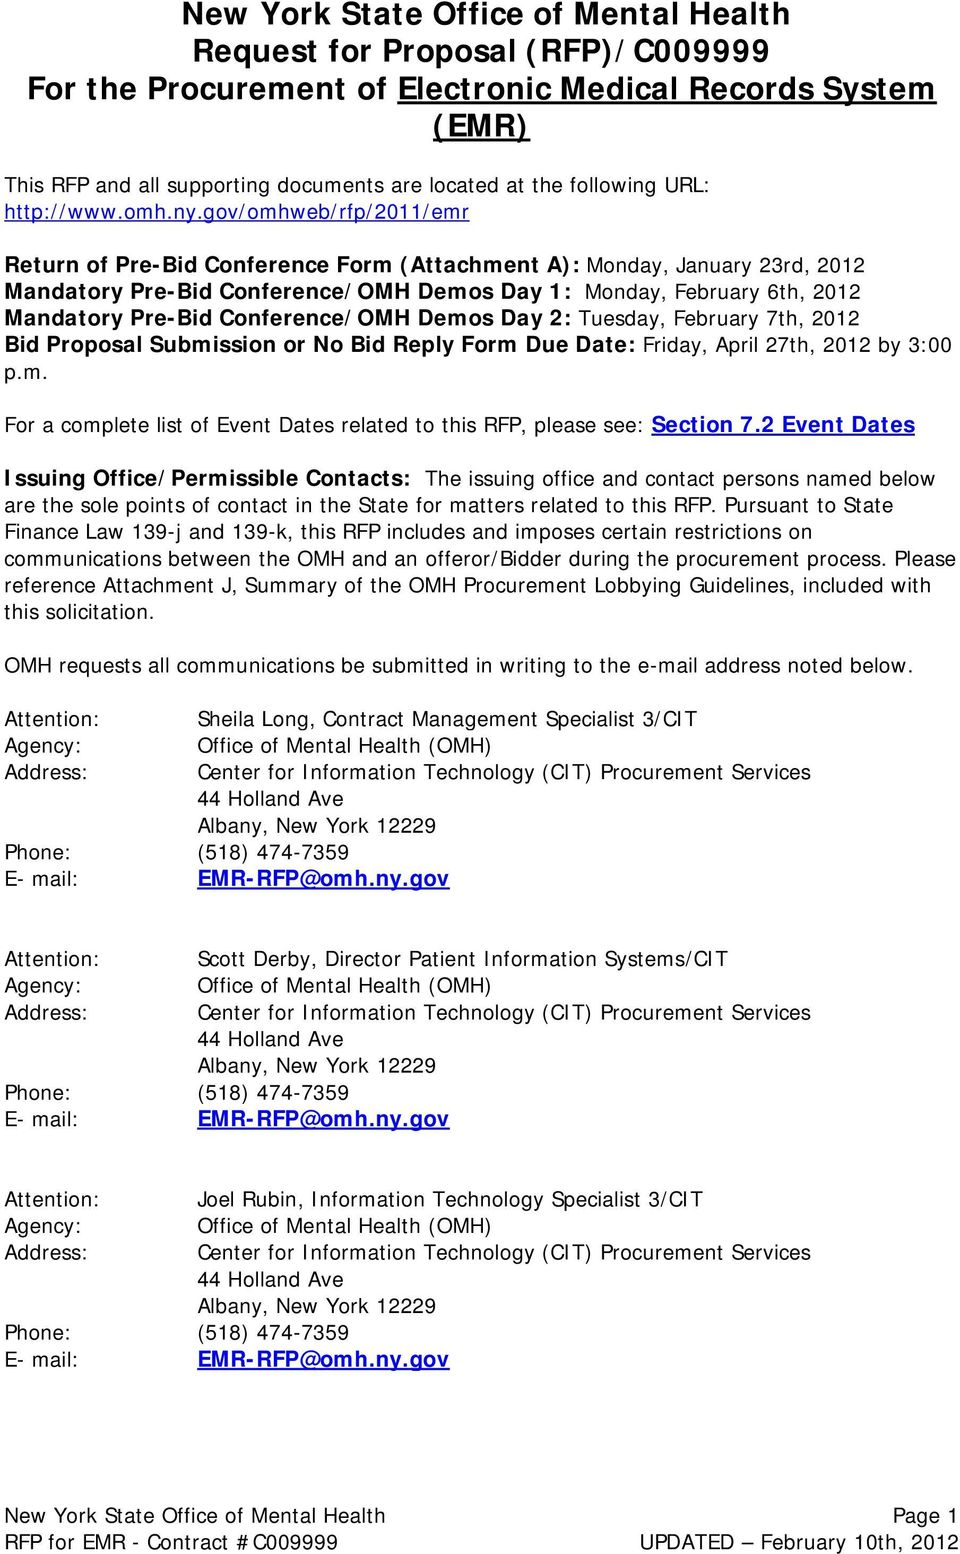 gov/omhweb/rfp/2011/emr Return of Pre-Bid Conference Form (Attachment A): Monday, January 23rd, 2012 Mandatory Pre-Bid Conference/OMH Demos Day 1: Monday, February 6th, 2012 Mandatory Pre-Bid